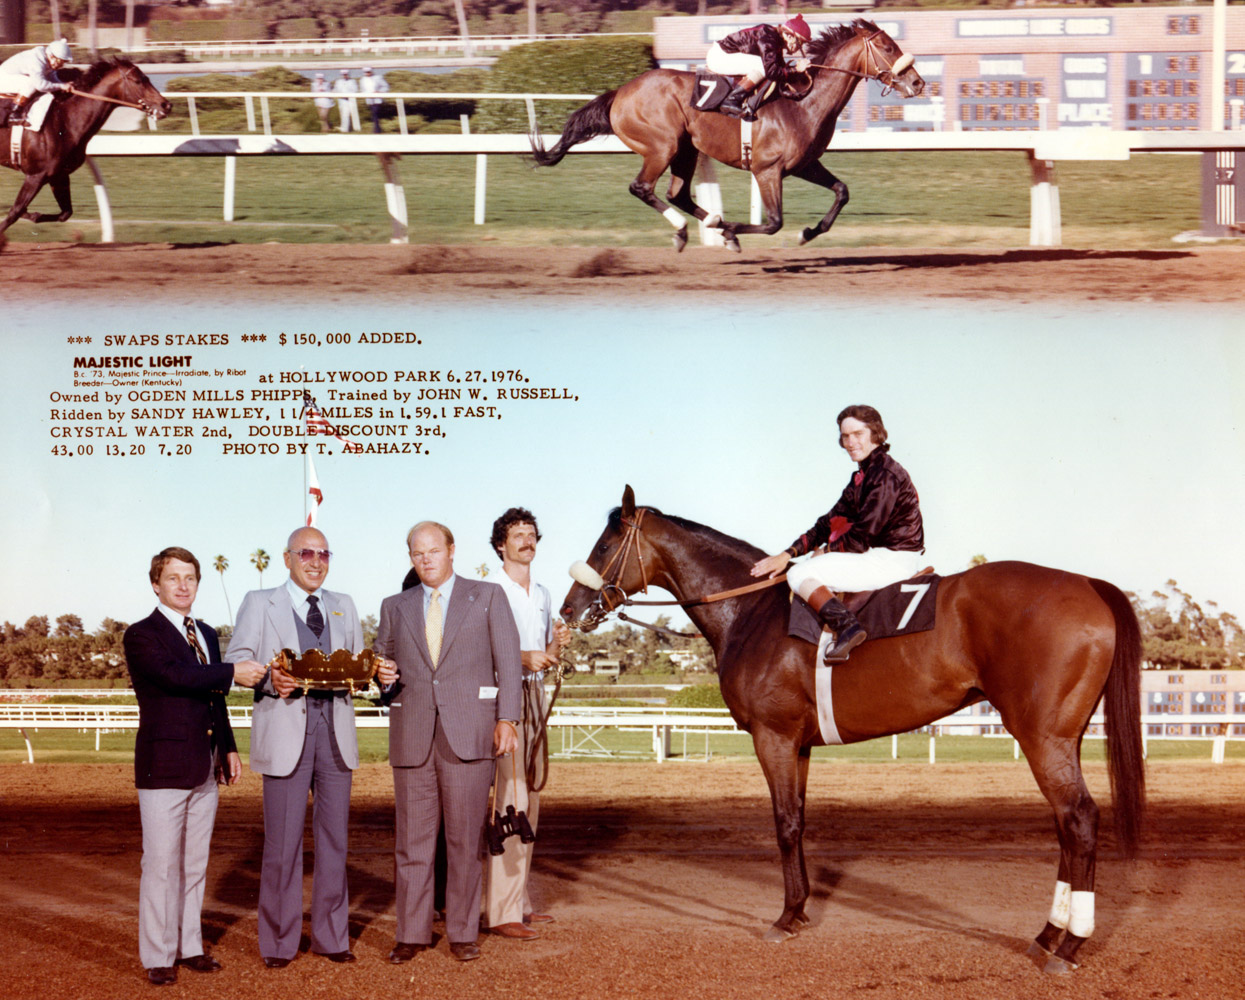 """Win composite photograph for the 1976 Swaps Stakes at Hollywood Park, won by Majestic Light (owned by Ogden Mills """"Dinny"""" Phipps) (Hollywood Park Photo/Museum Collection)"""